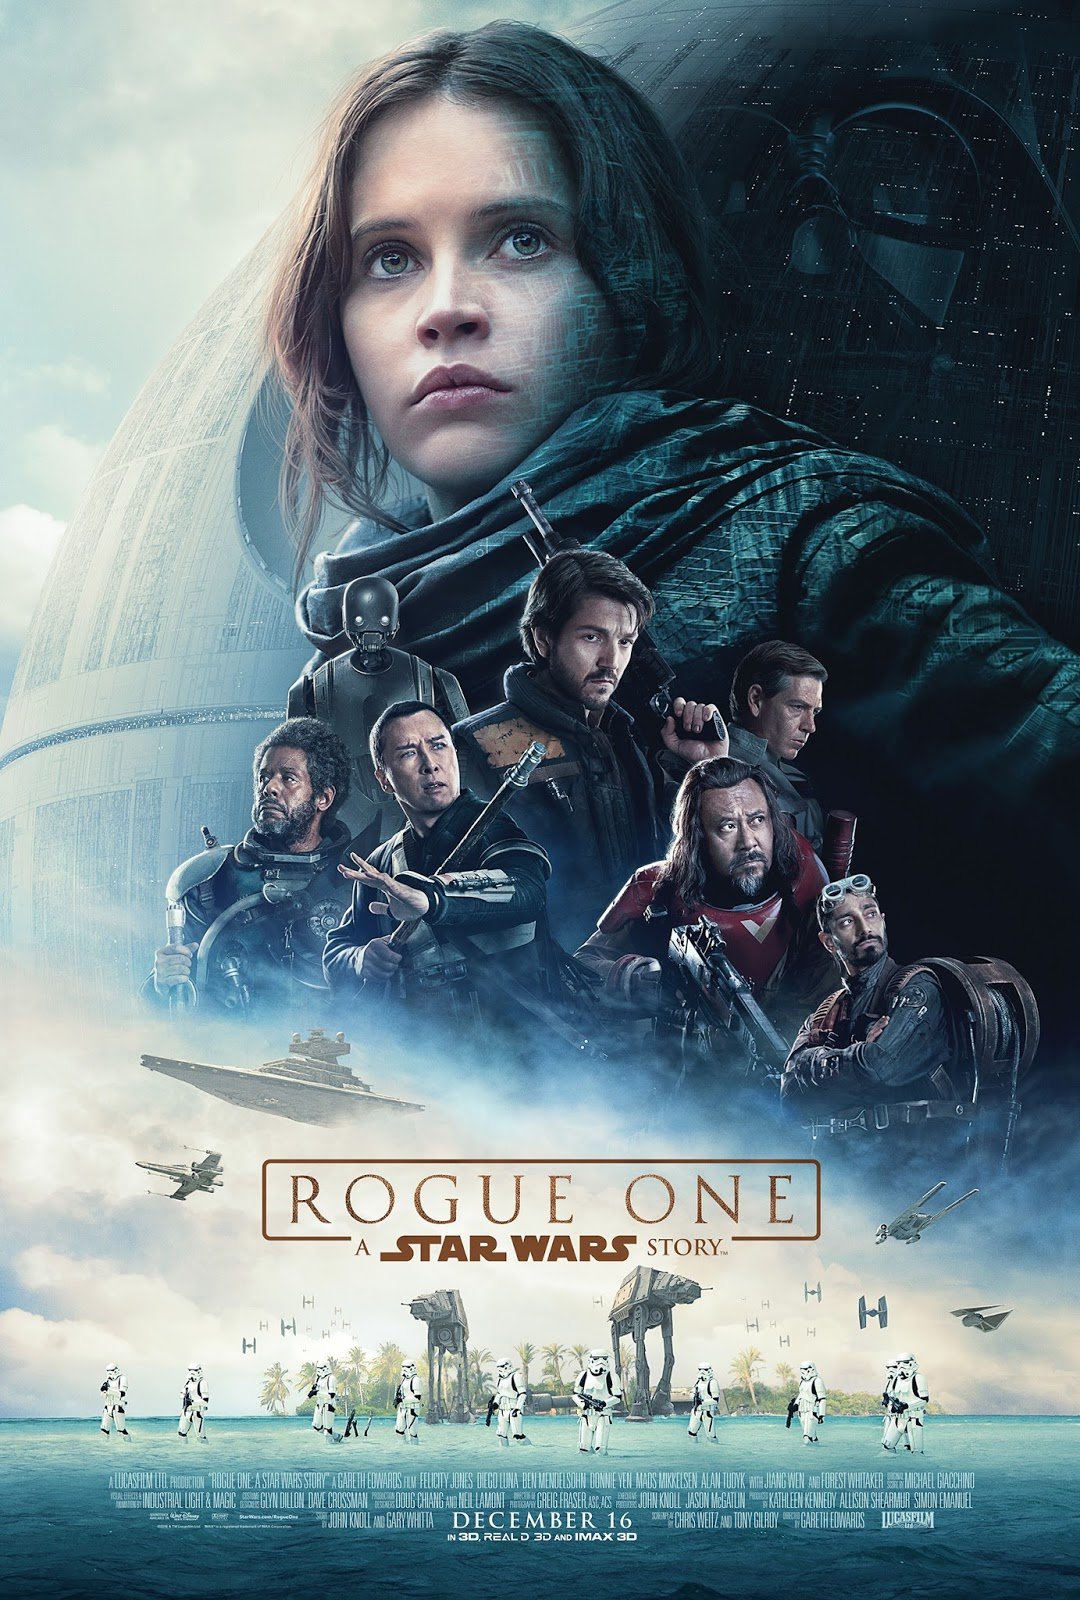 Review Filem Rogue One: A Star Wars Story